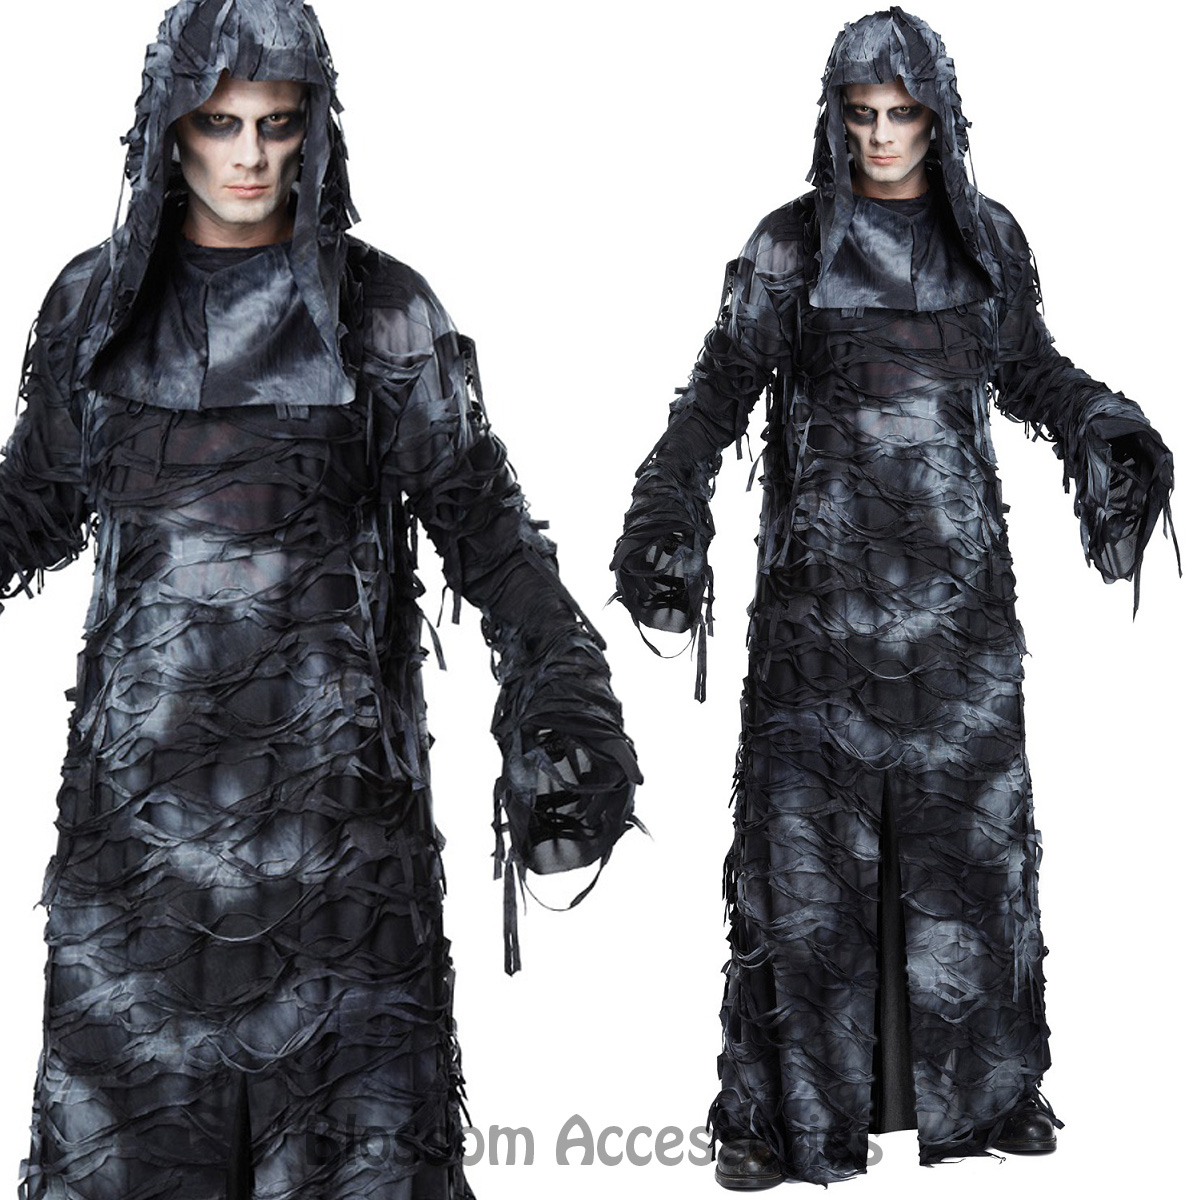 ca103 deluxe ghoul ghost costume halloween scary evil spirit robe